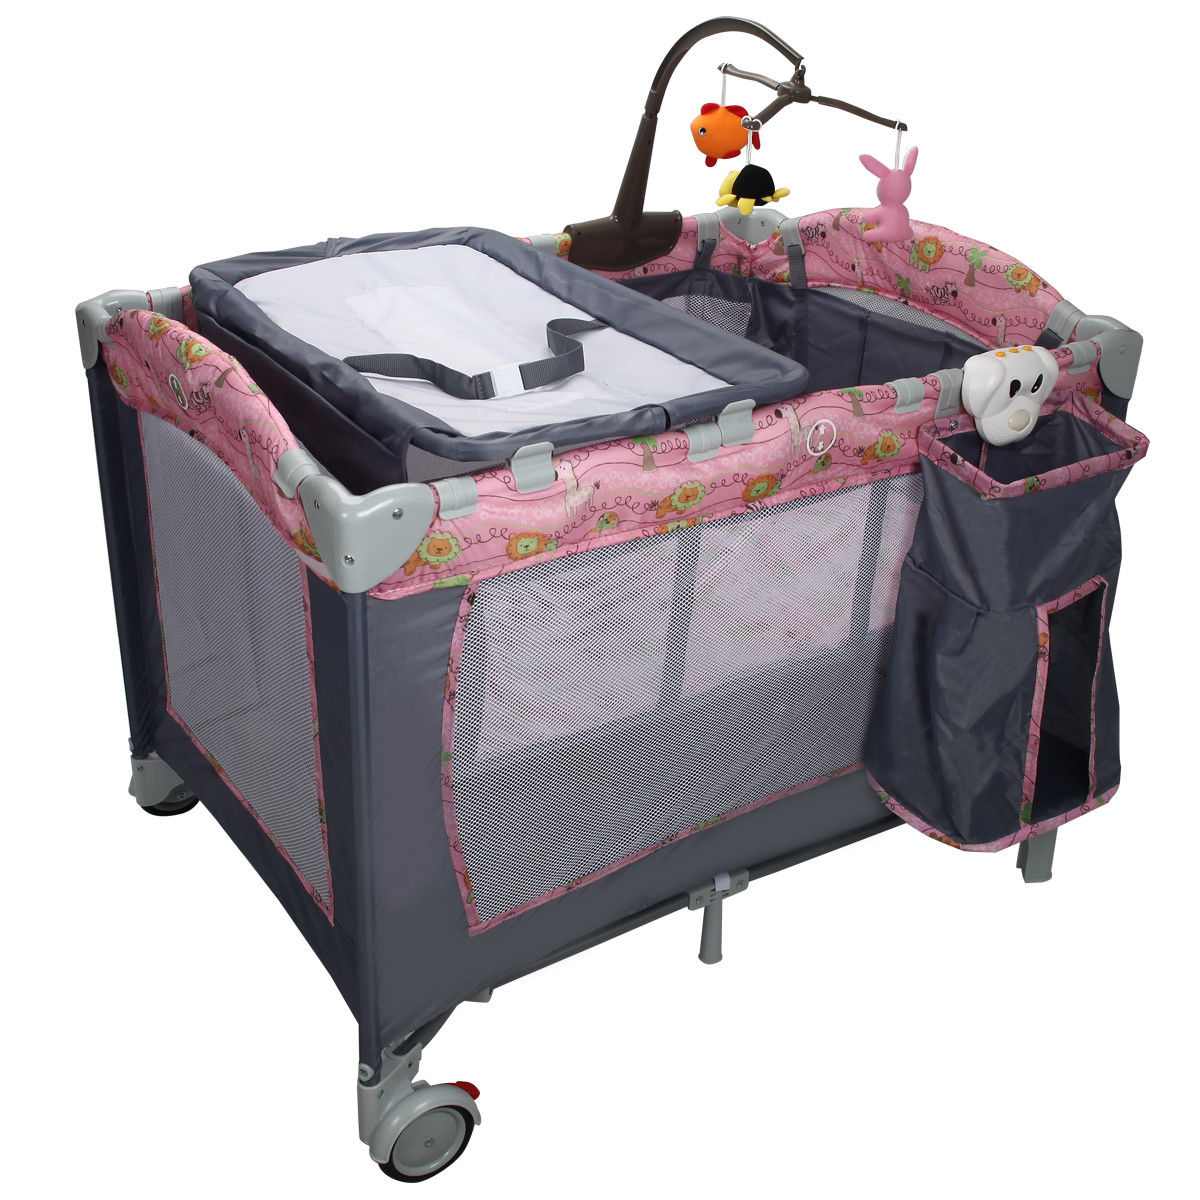 Costway Foldable Baby Crib Playpen Playard Pack Travel Infant Bassinet Bed Music Pink